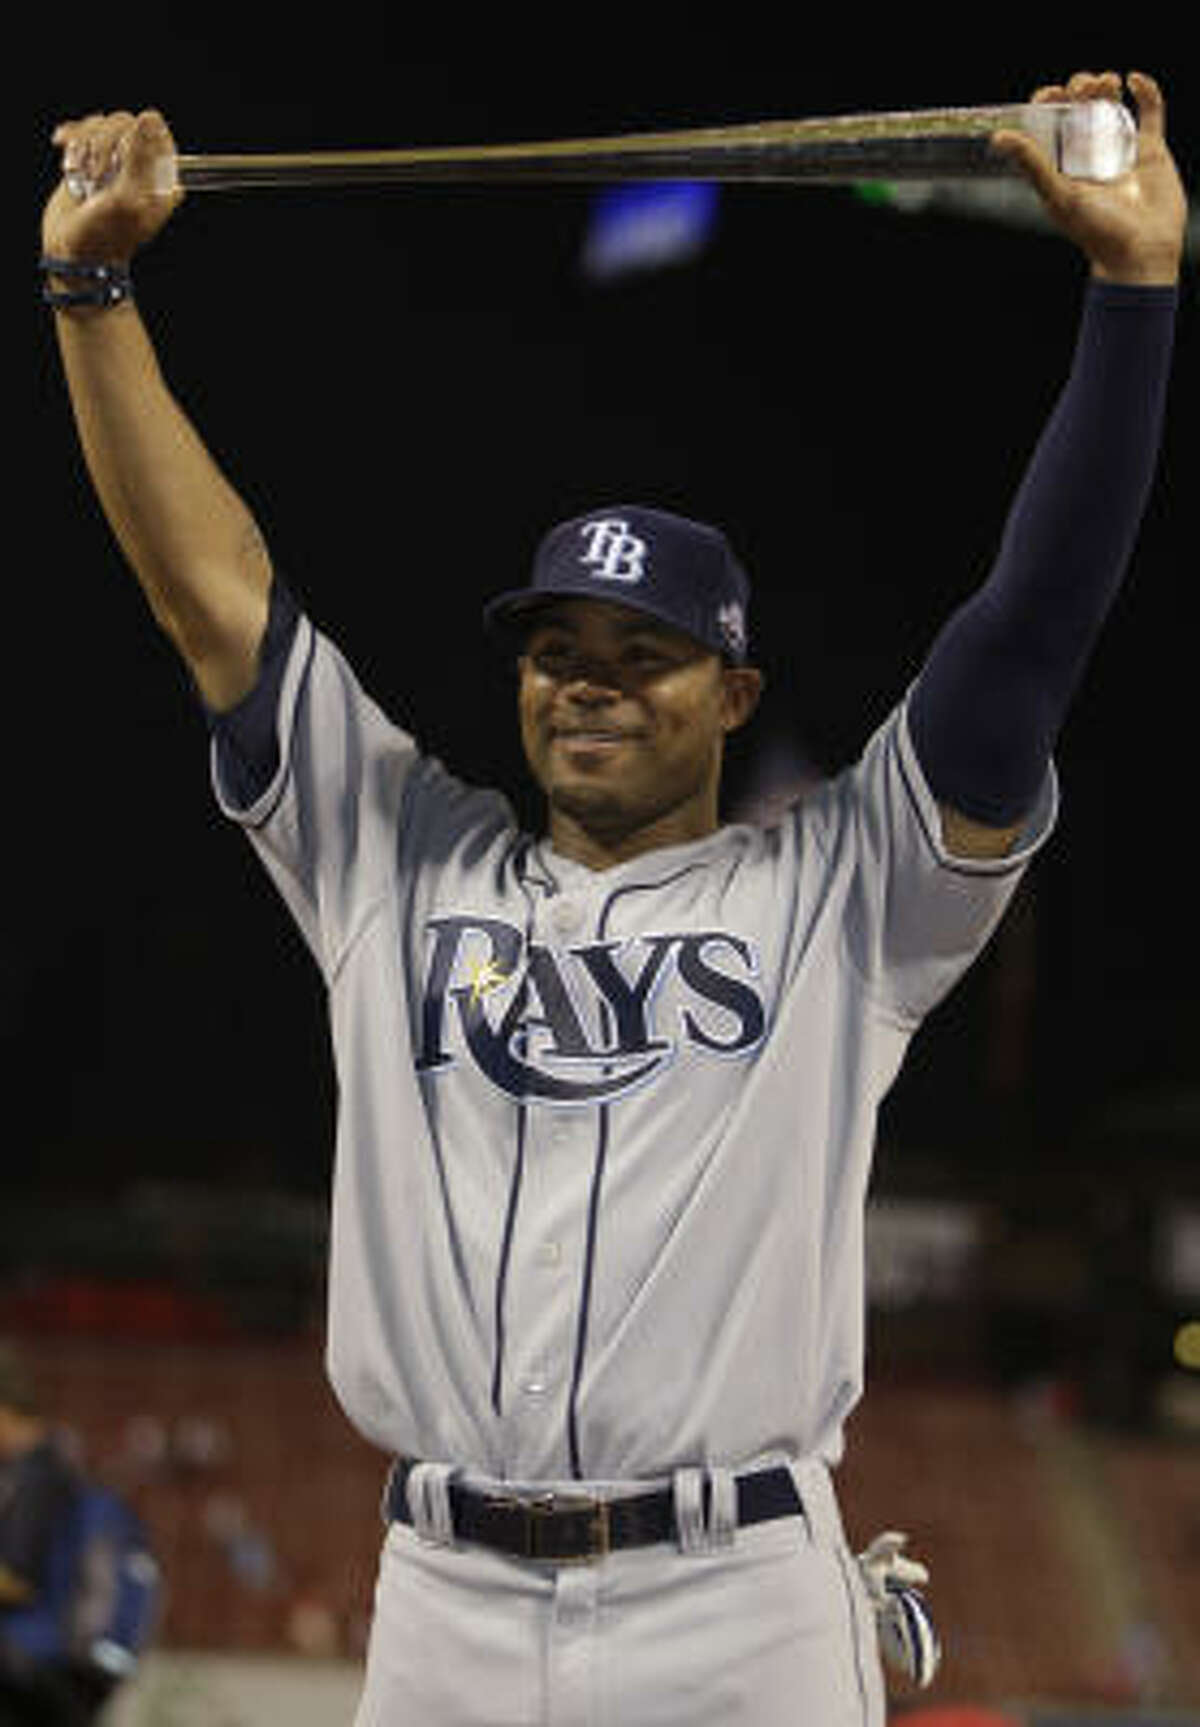 American League's Carl Crawford of the Tampa Bay Rays holds the MVP trophy.